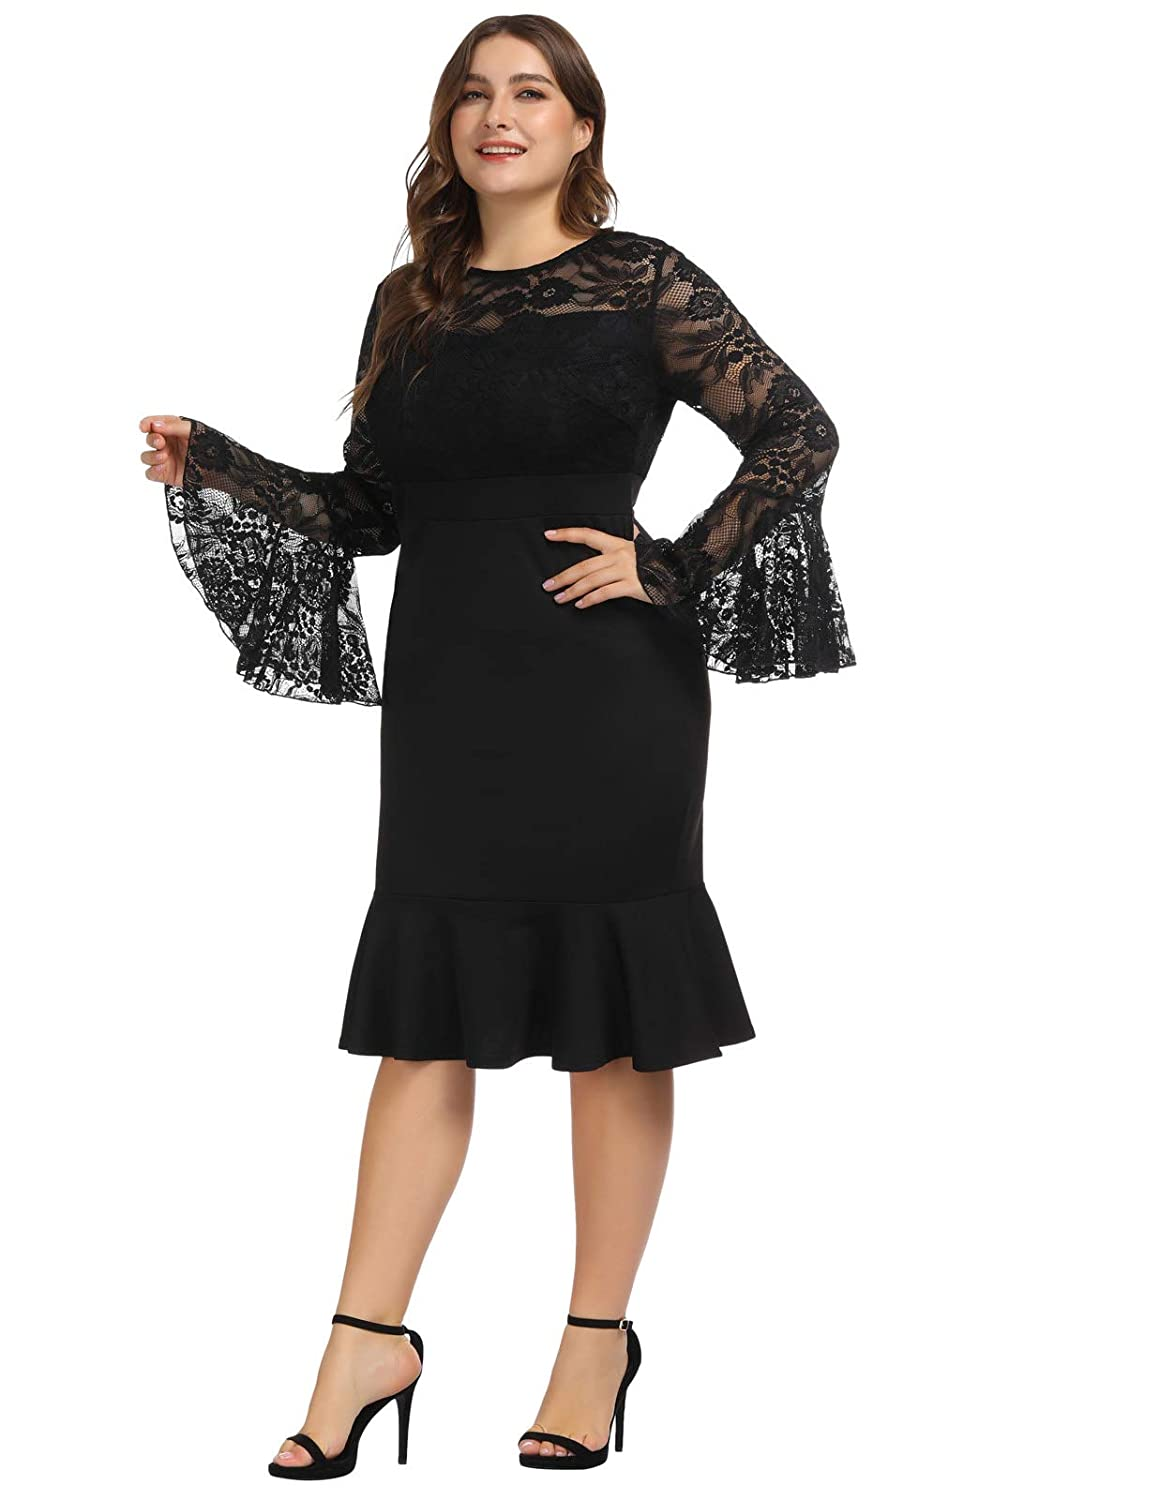 41779f8457 Hanna Nikole Women s Plus Size Lace Ruffle Bell Sleeves Business Cocktail  Party Mermaid Sheath Dress